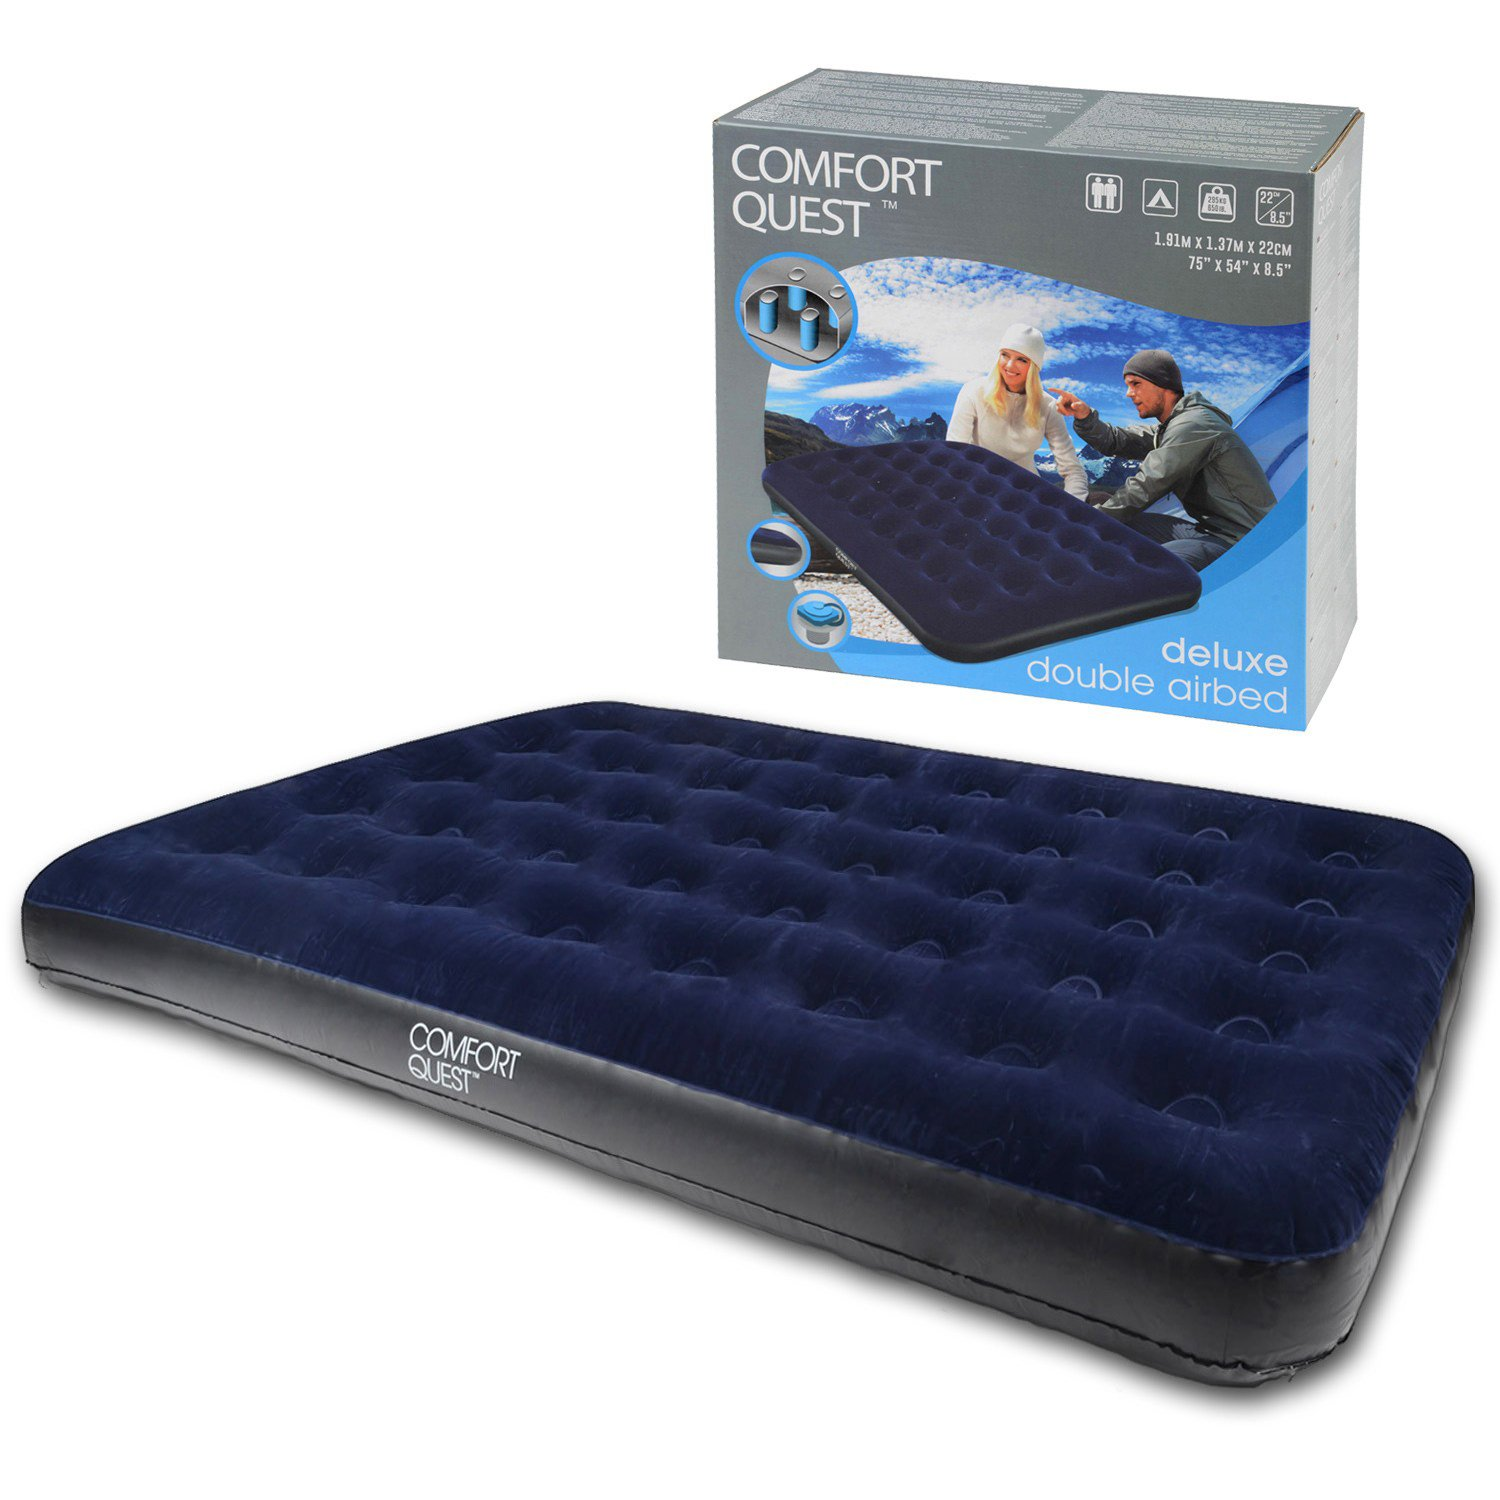 Sleeping bag suit moreover blow up air mattress as well bed inflatable - Double Airbed Inflatable Blow Up Camping Mattress Guest Air Bed Comfort Quest